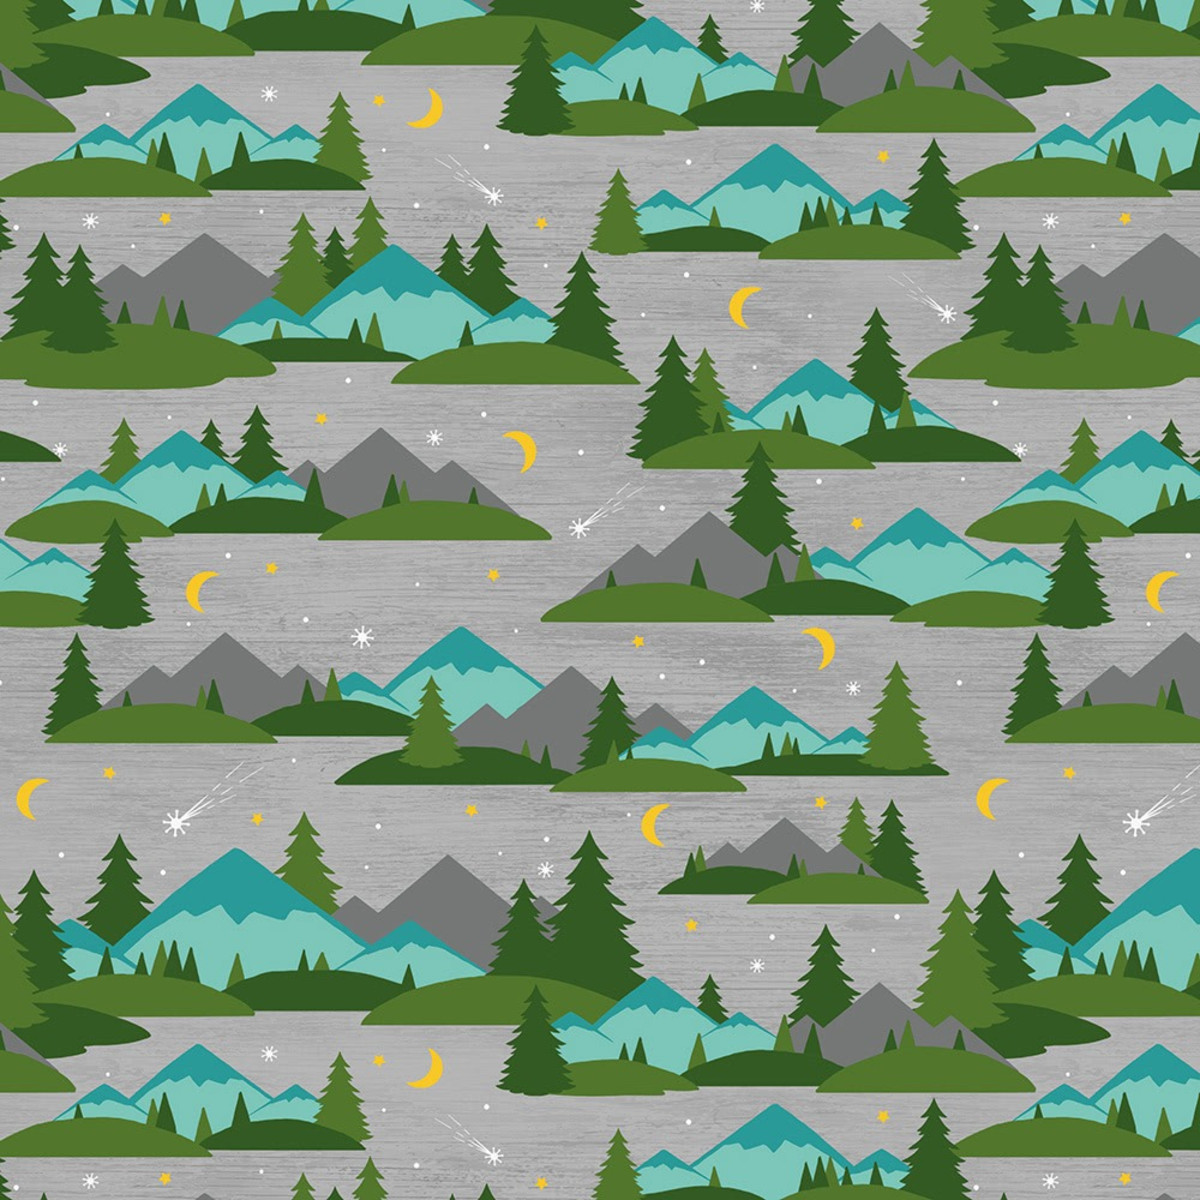 Wilmington Prints - Gone Glamping - Mountains & Trees (gray)